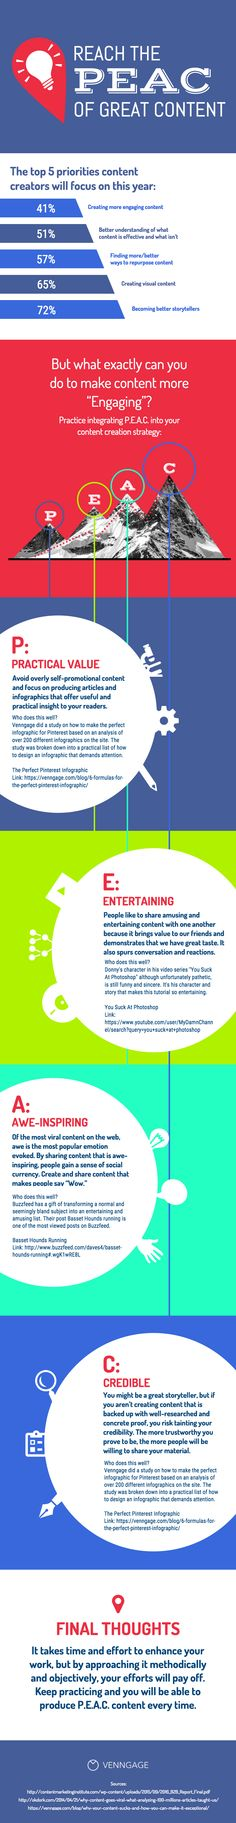 4 Key Elements To Help You Achieve Content Excellence [Infographic] - @socialmedia2day